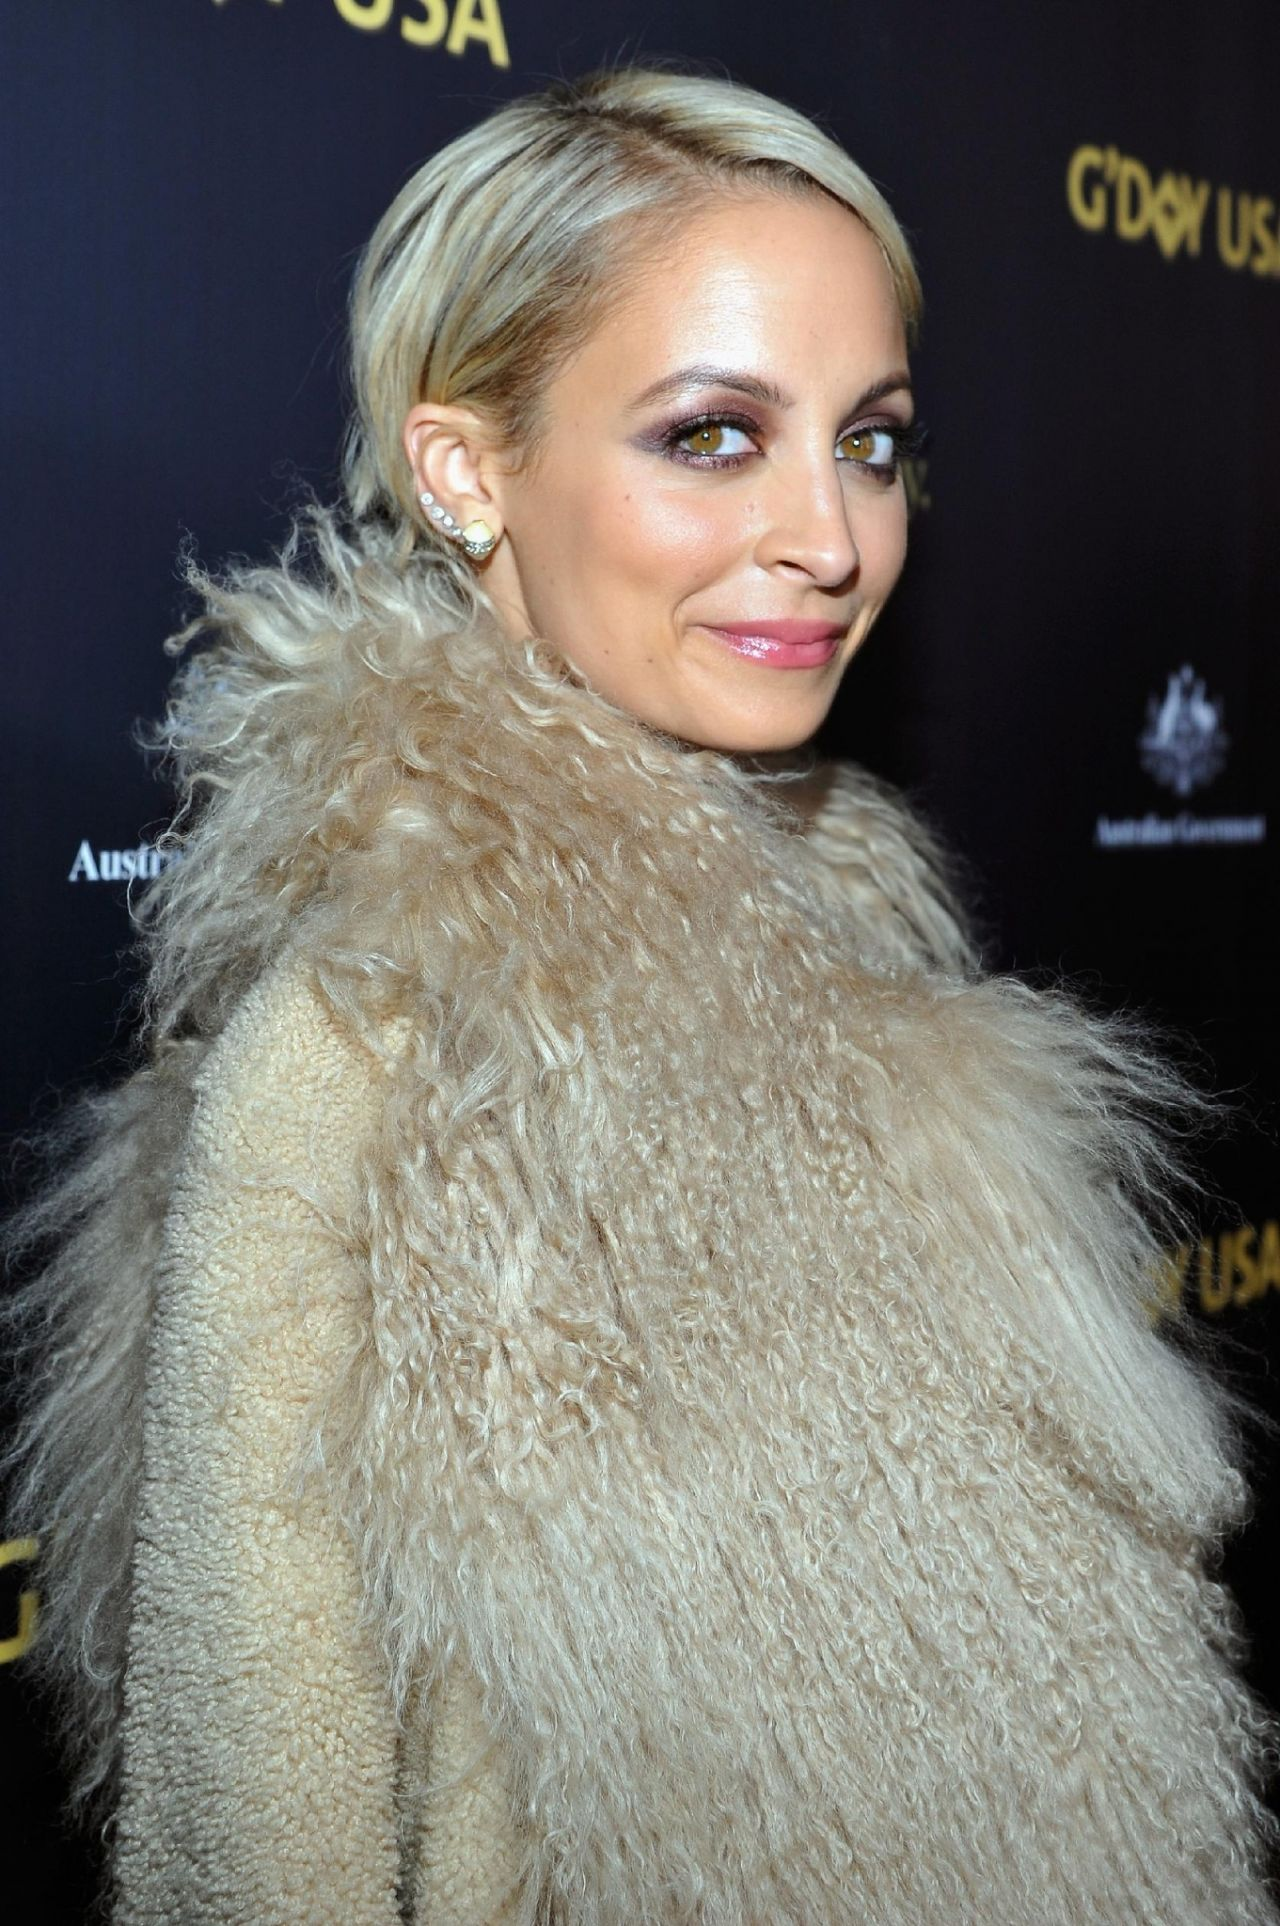 nicole-richie-2016-g-day-los-angeles-gala-in-los-angeles-9